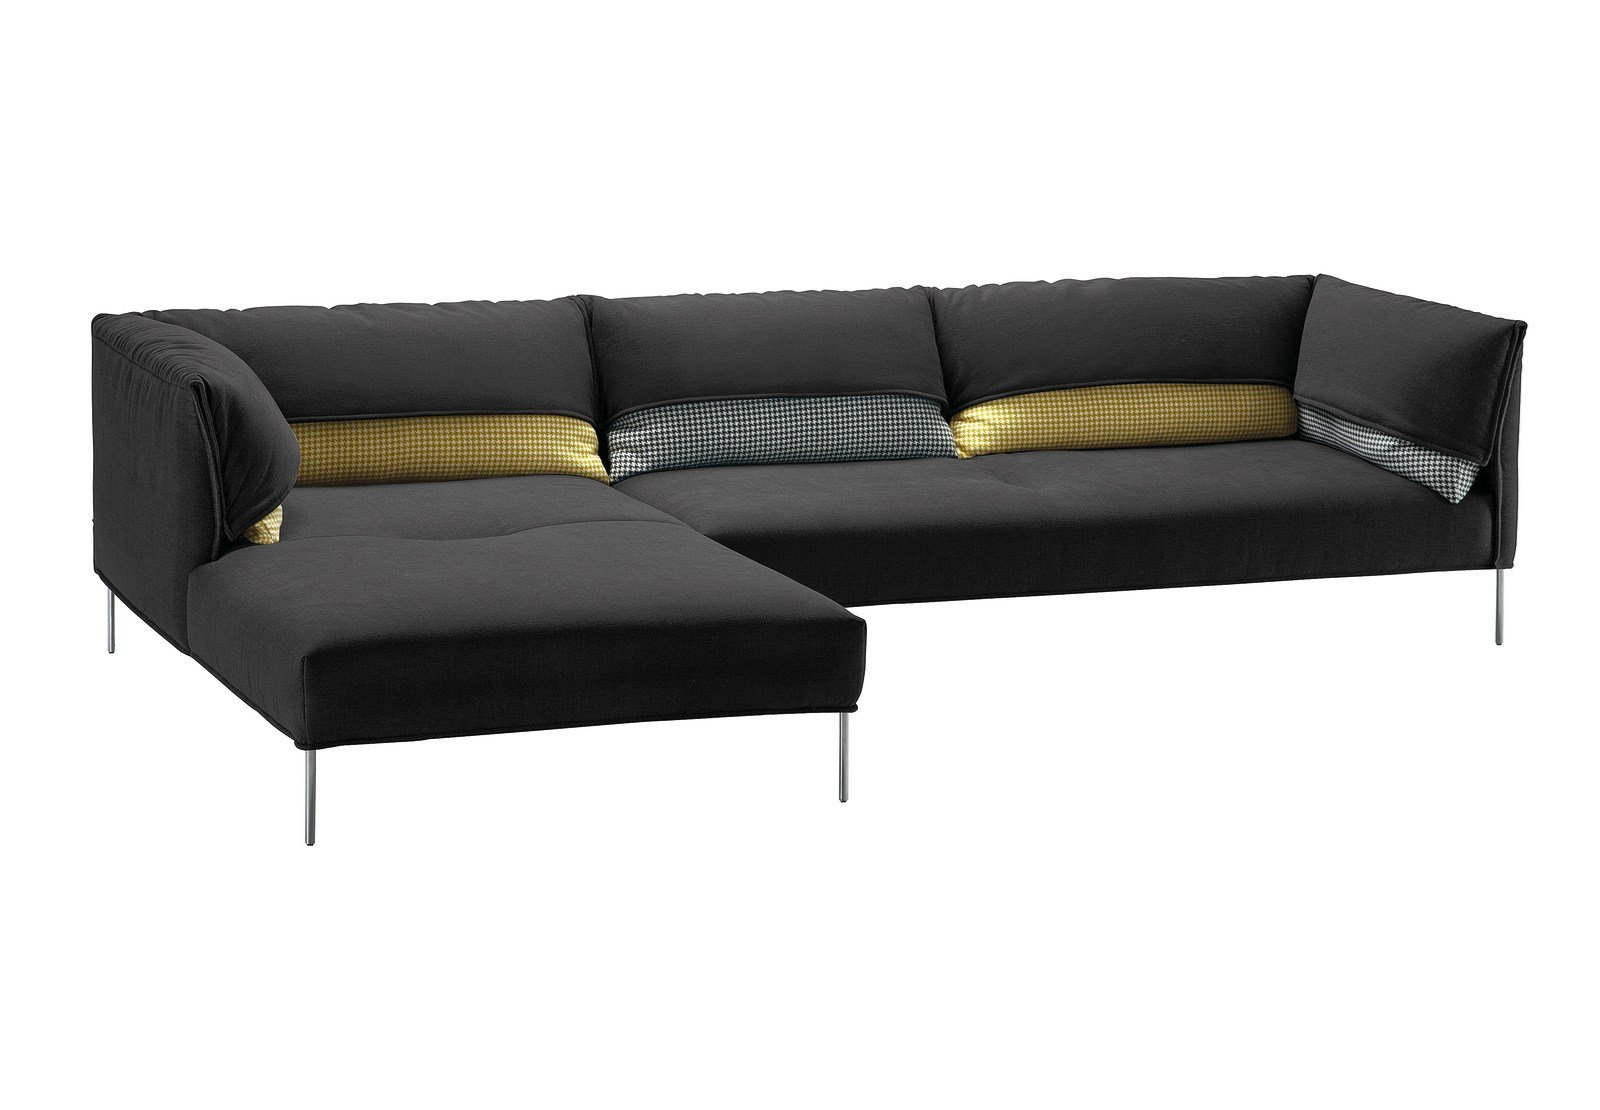 sofa mit abnehmbarem bezug undercover by zanotta design anna von schewen. Black Bedroom Furniture Sets. Home Design Ideas